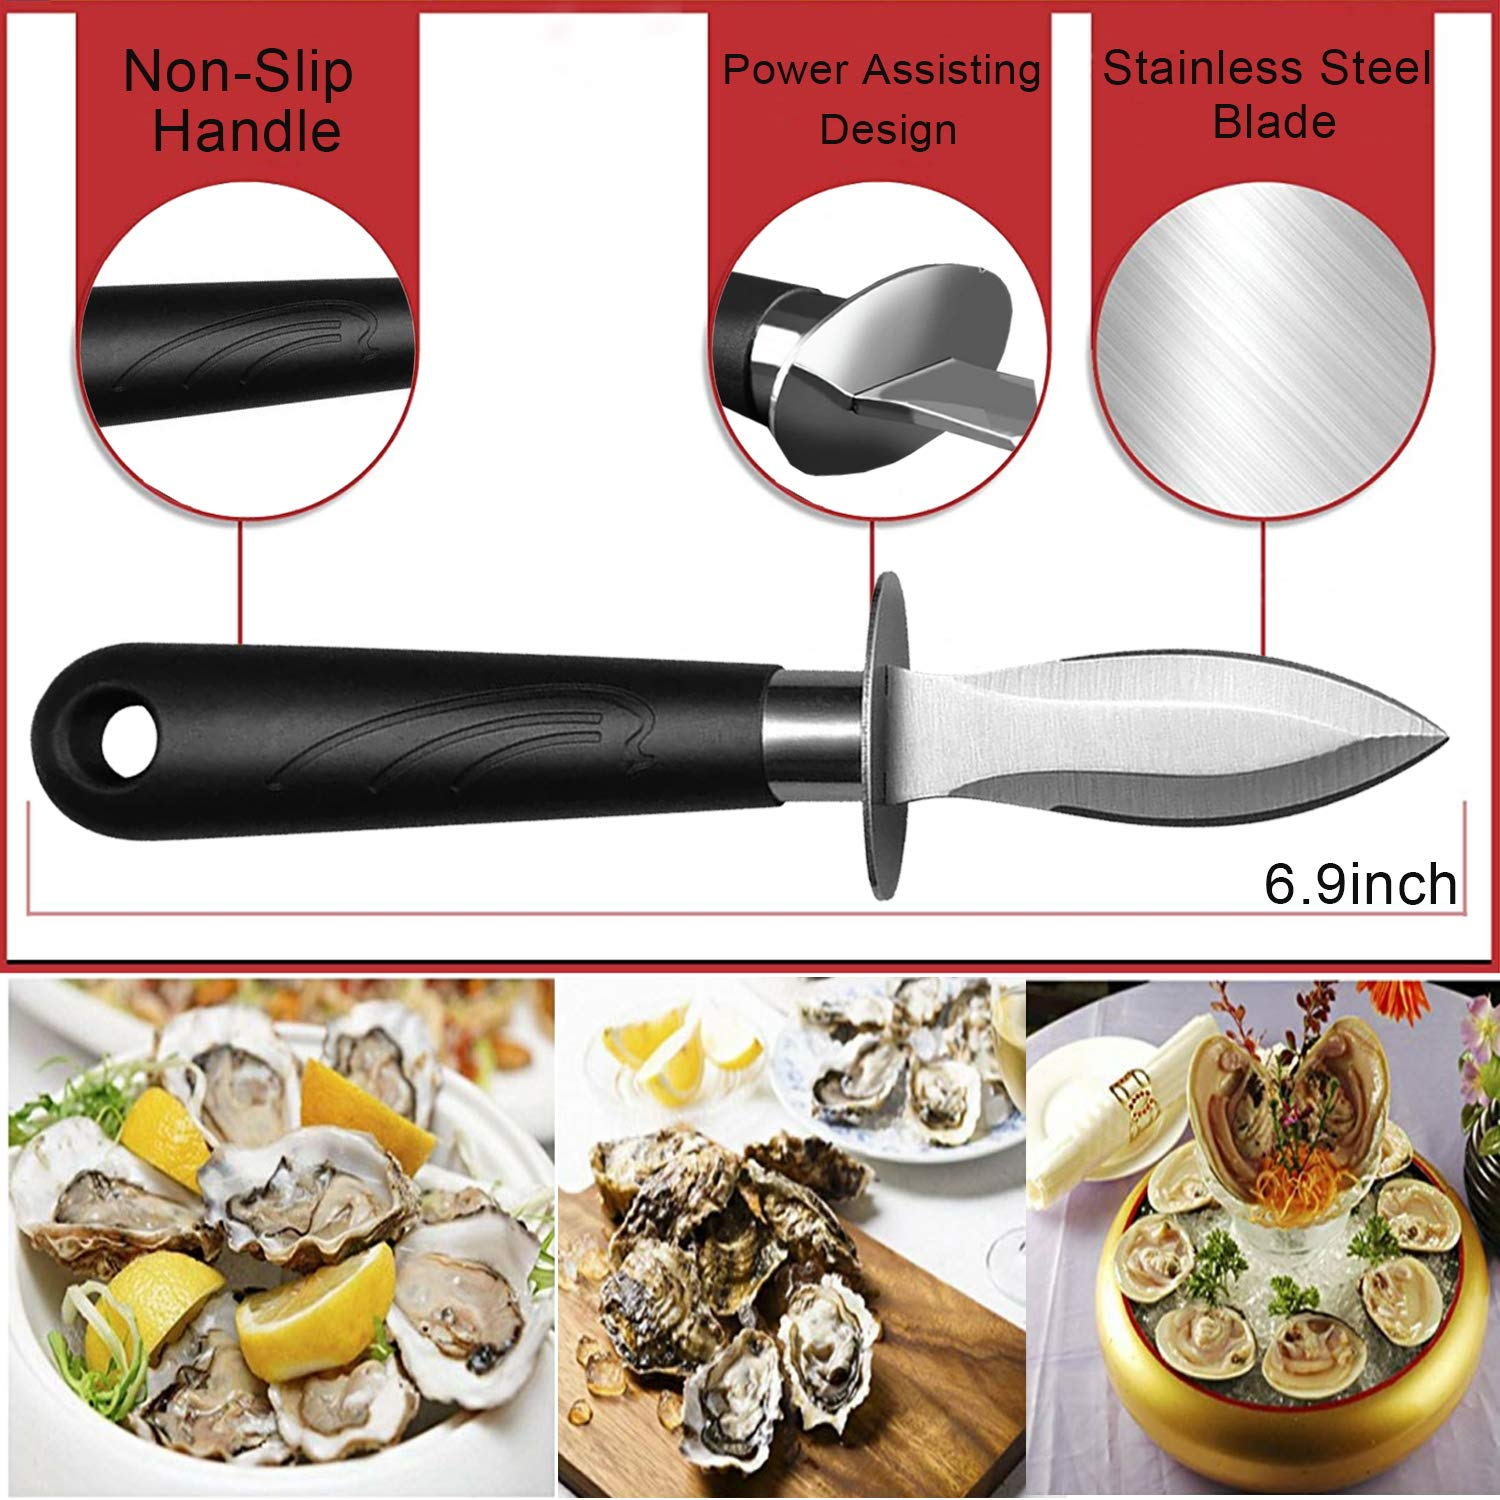 WENDOM Oyster Knife Shucker Set Oyster Shucking Knife and Gloves Cut Resistant Level 5 Protection Seafood Opener Kit Tools Gift(2knifes+1Glove) by WENDOM (Image #2)